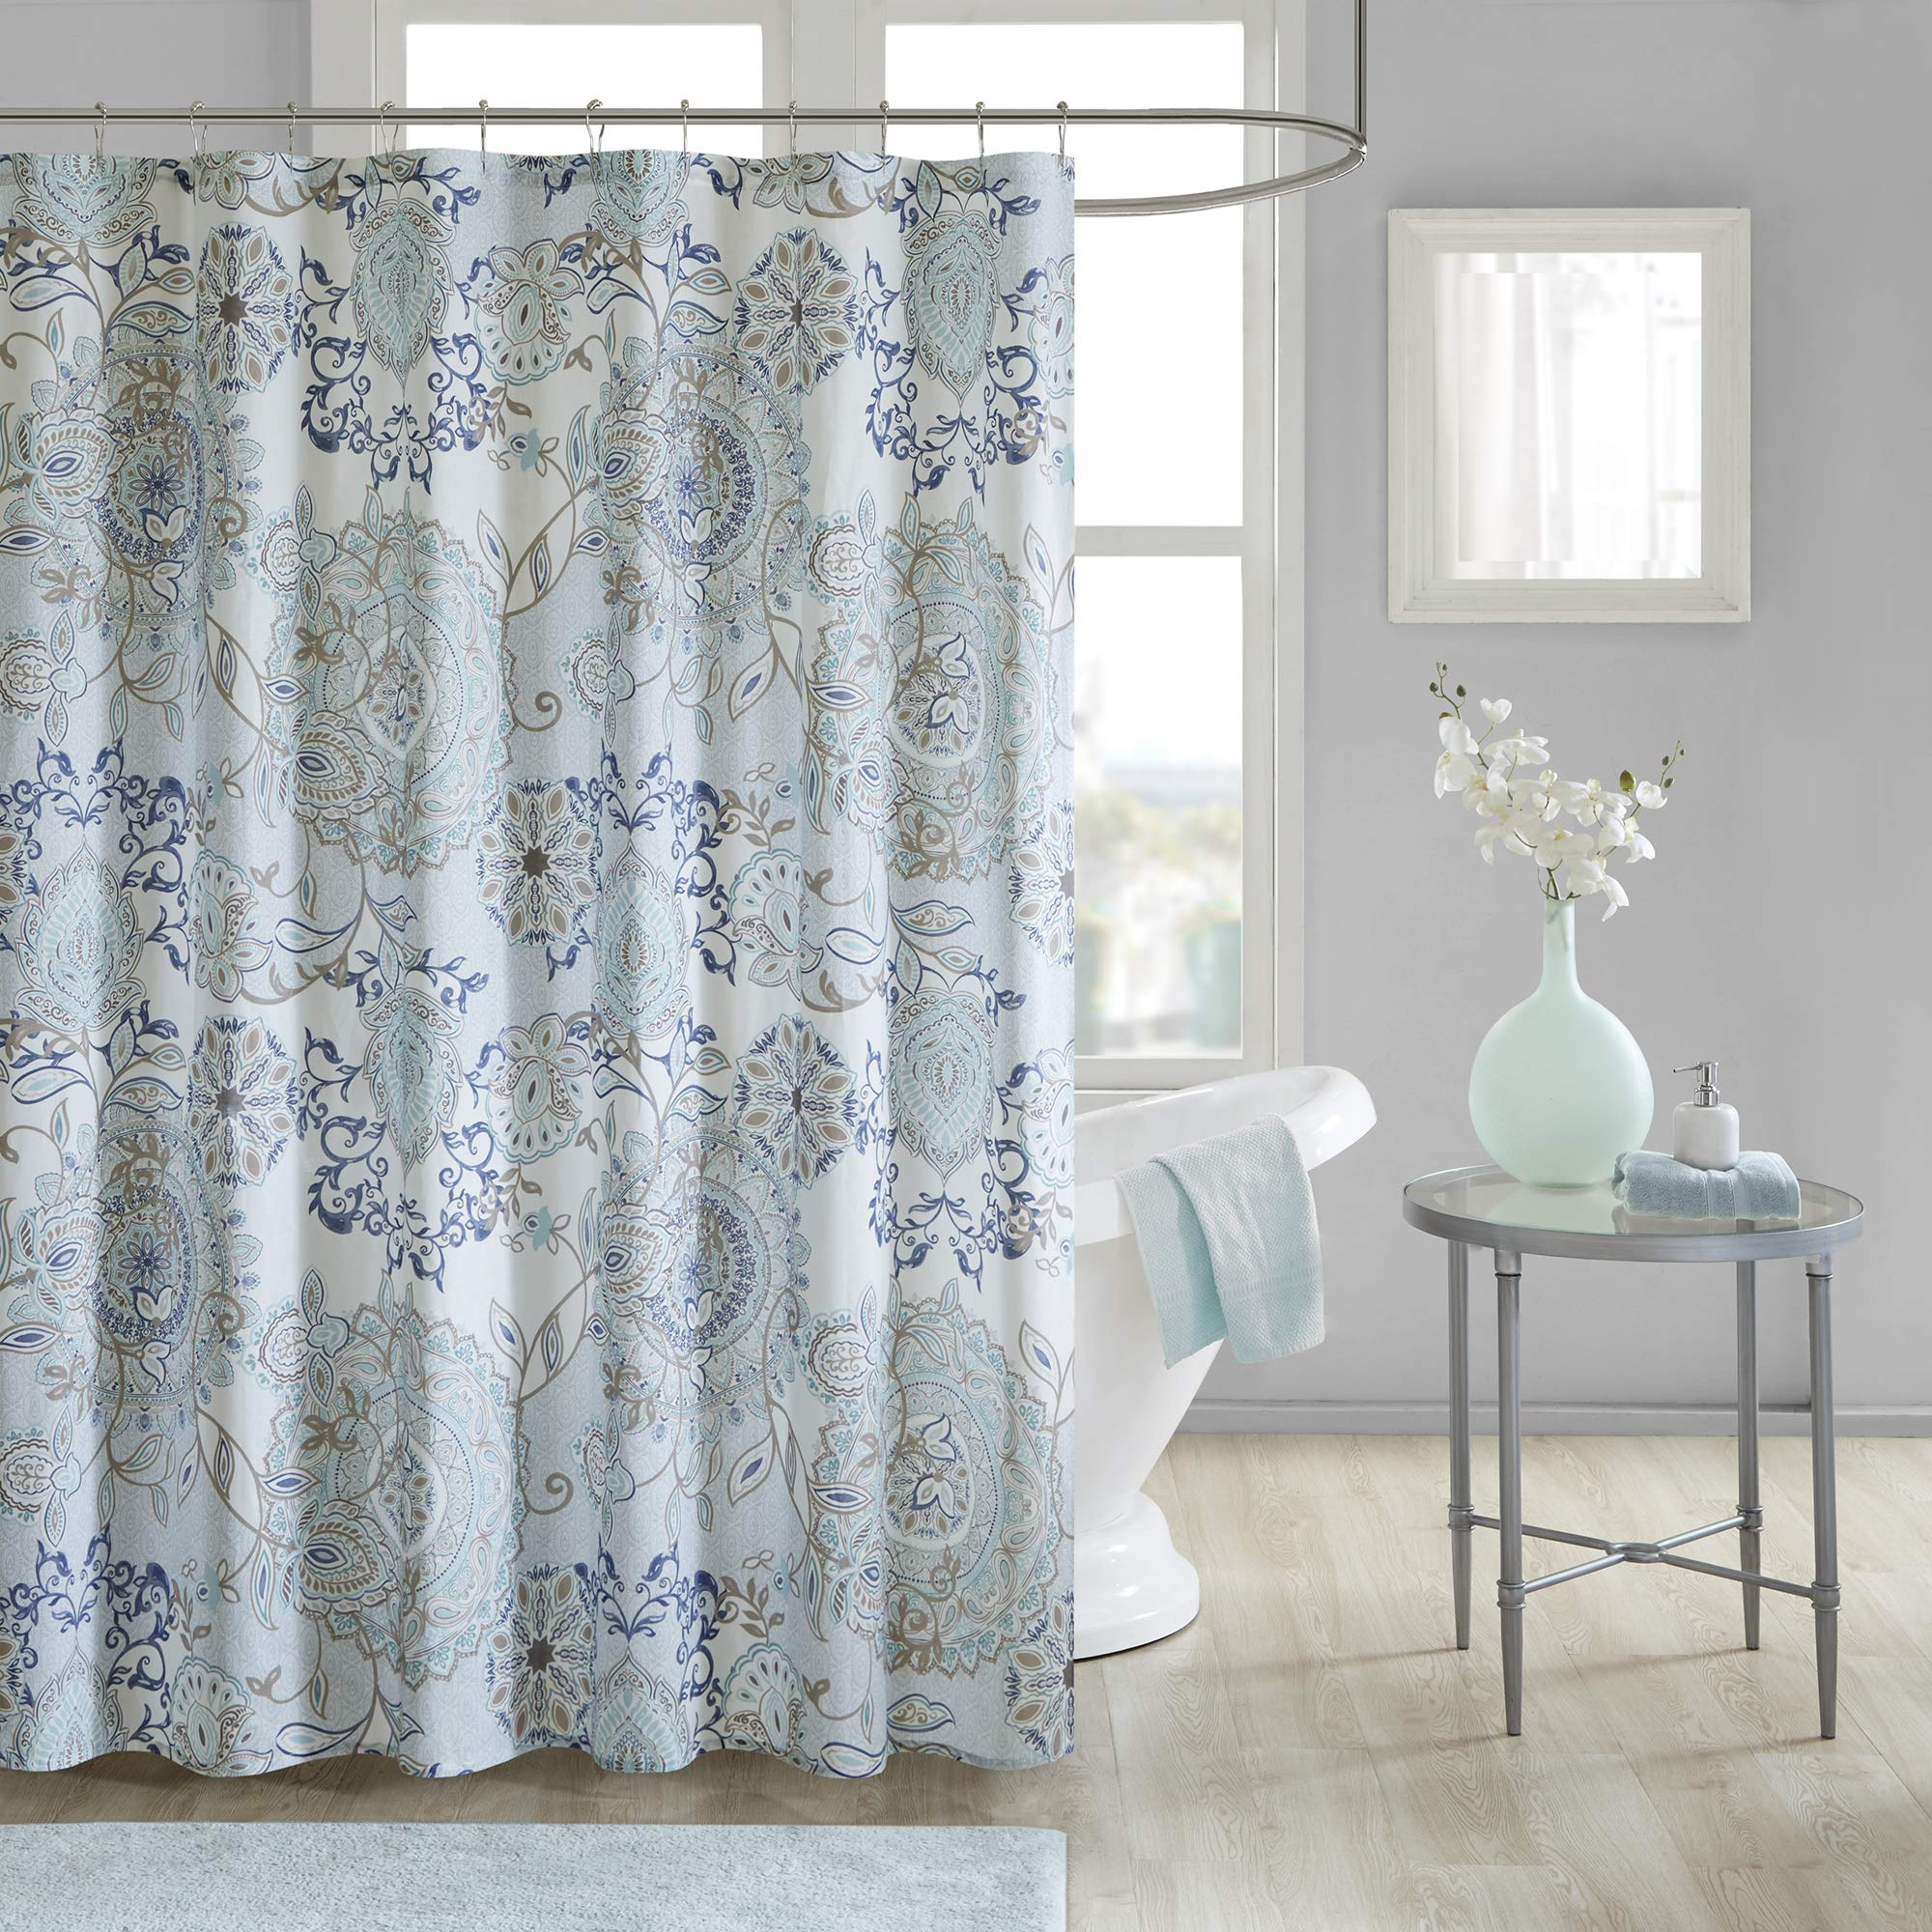 Madison Park Isla 100% Cotton Percale Floral Medallion Boho Printed Watercolor Cute Bathroom Shower Curtain, 72X72 Inches, Blue by Madison Park